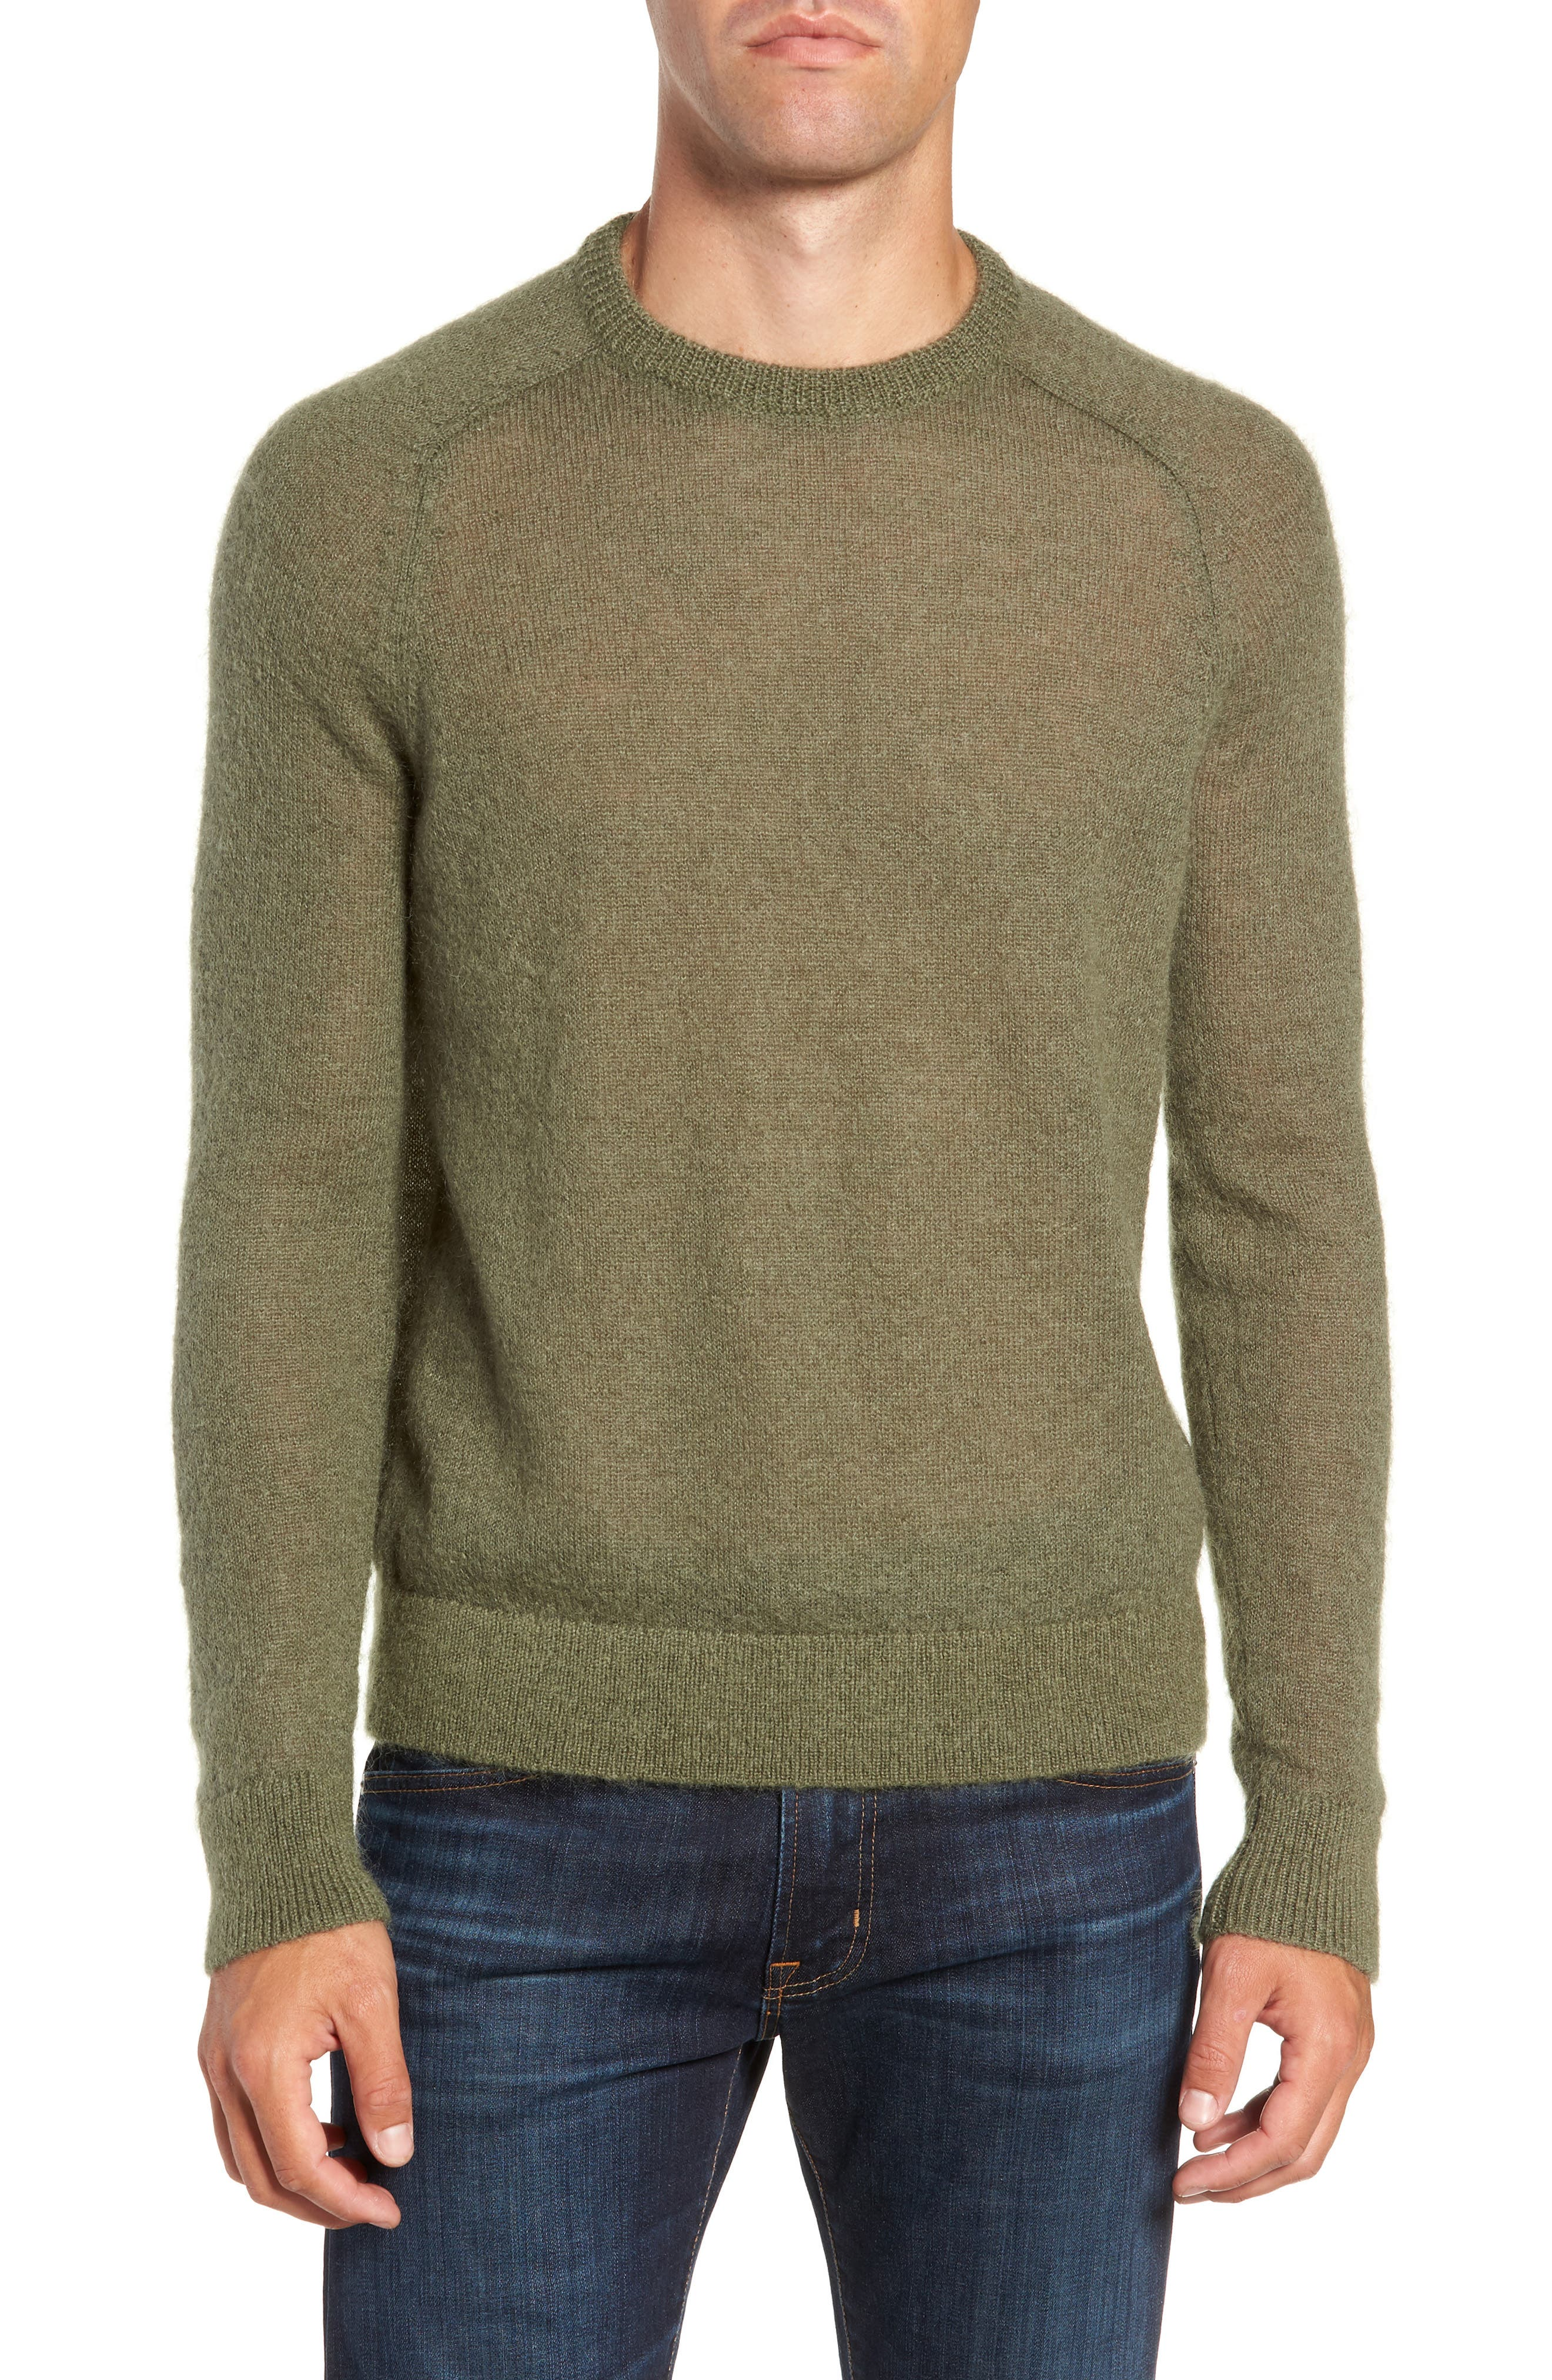 Mohair Blend Crewneck Sweater,                             Main thumbnail 1, color,                             DARK OLIVE